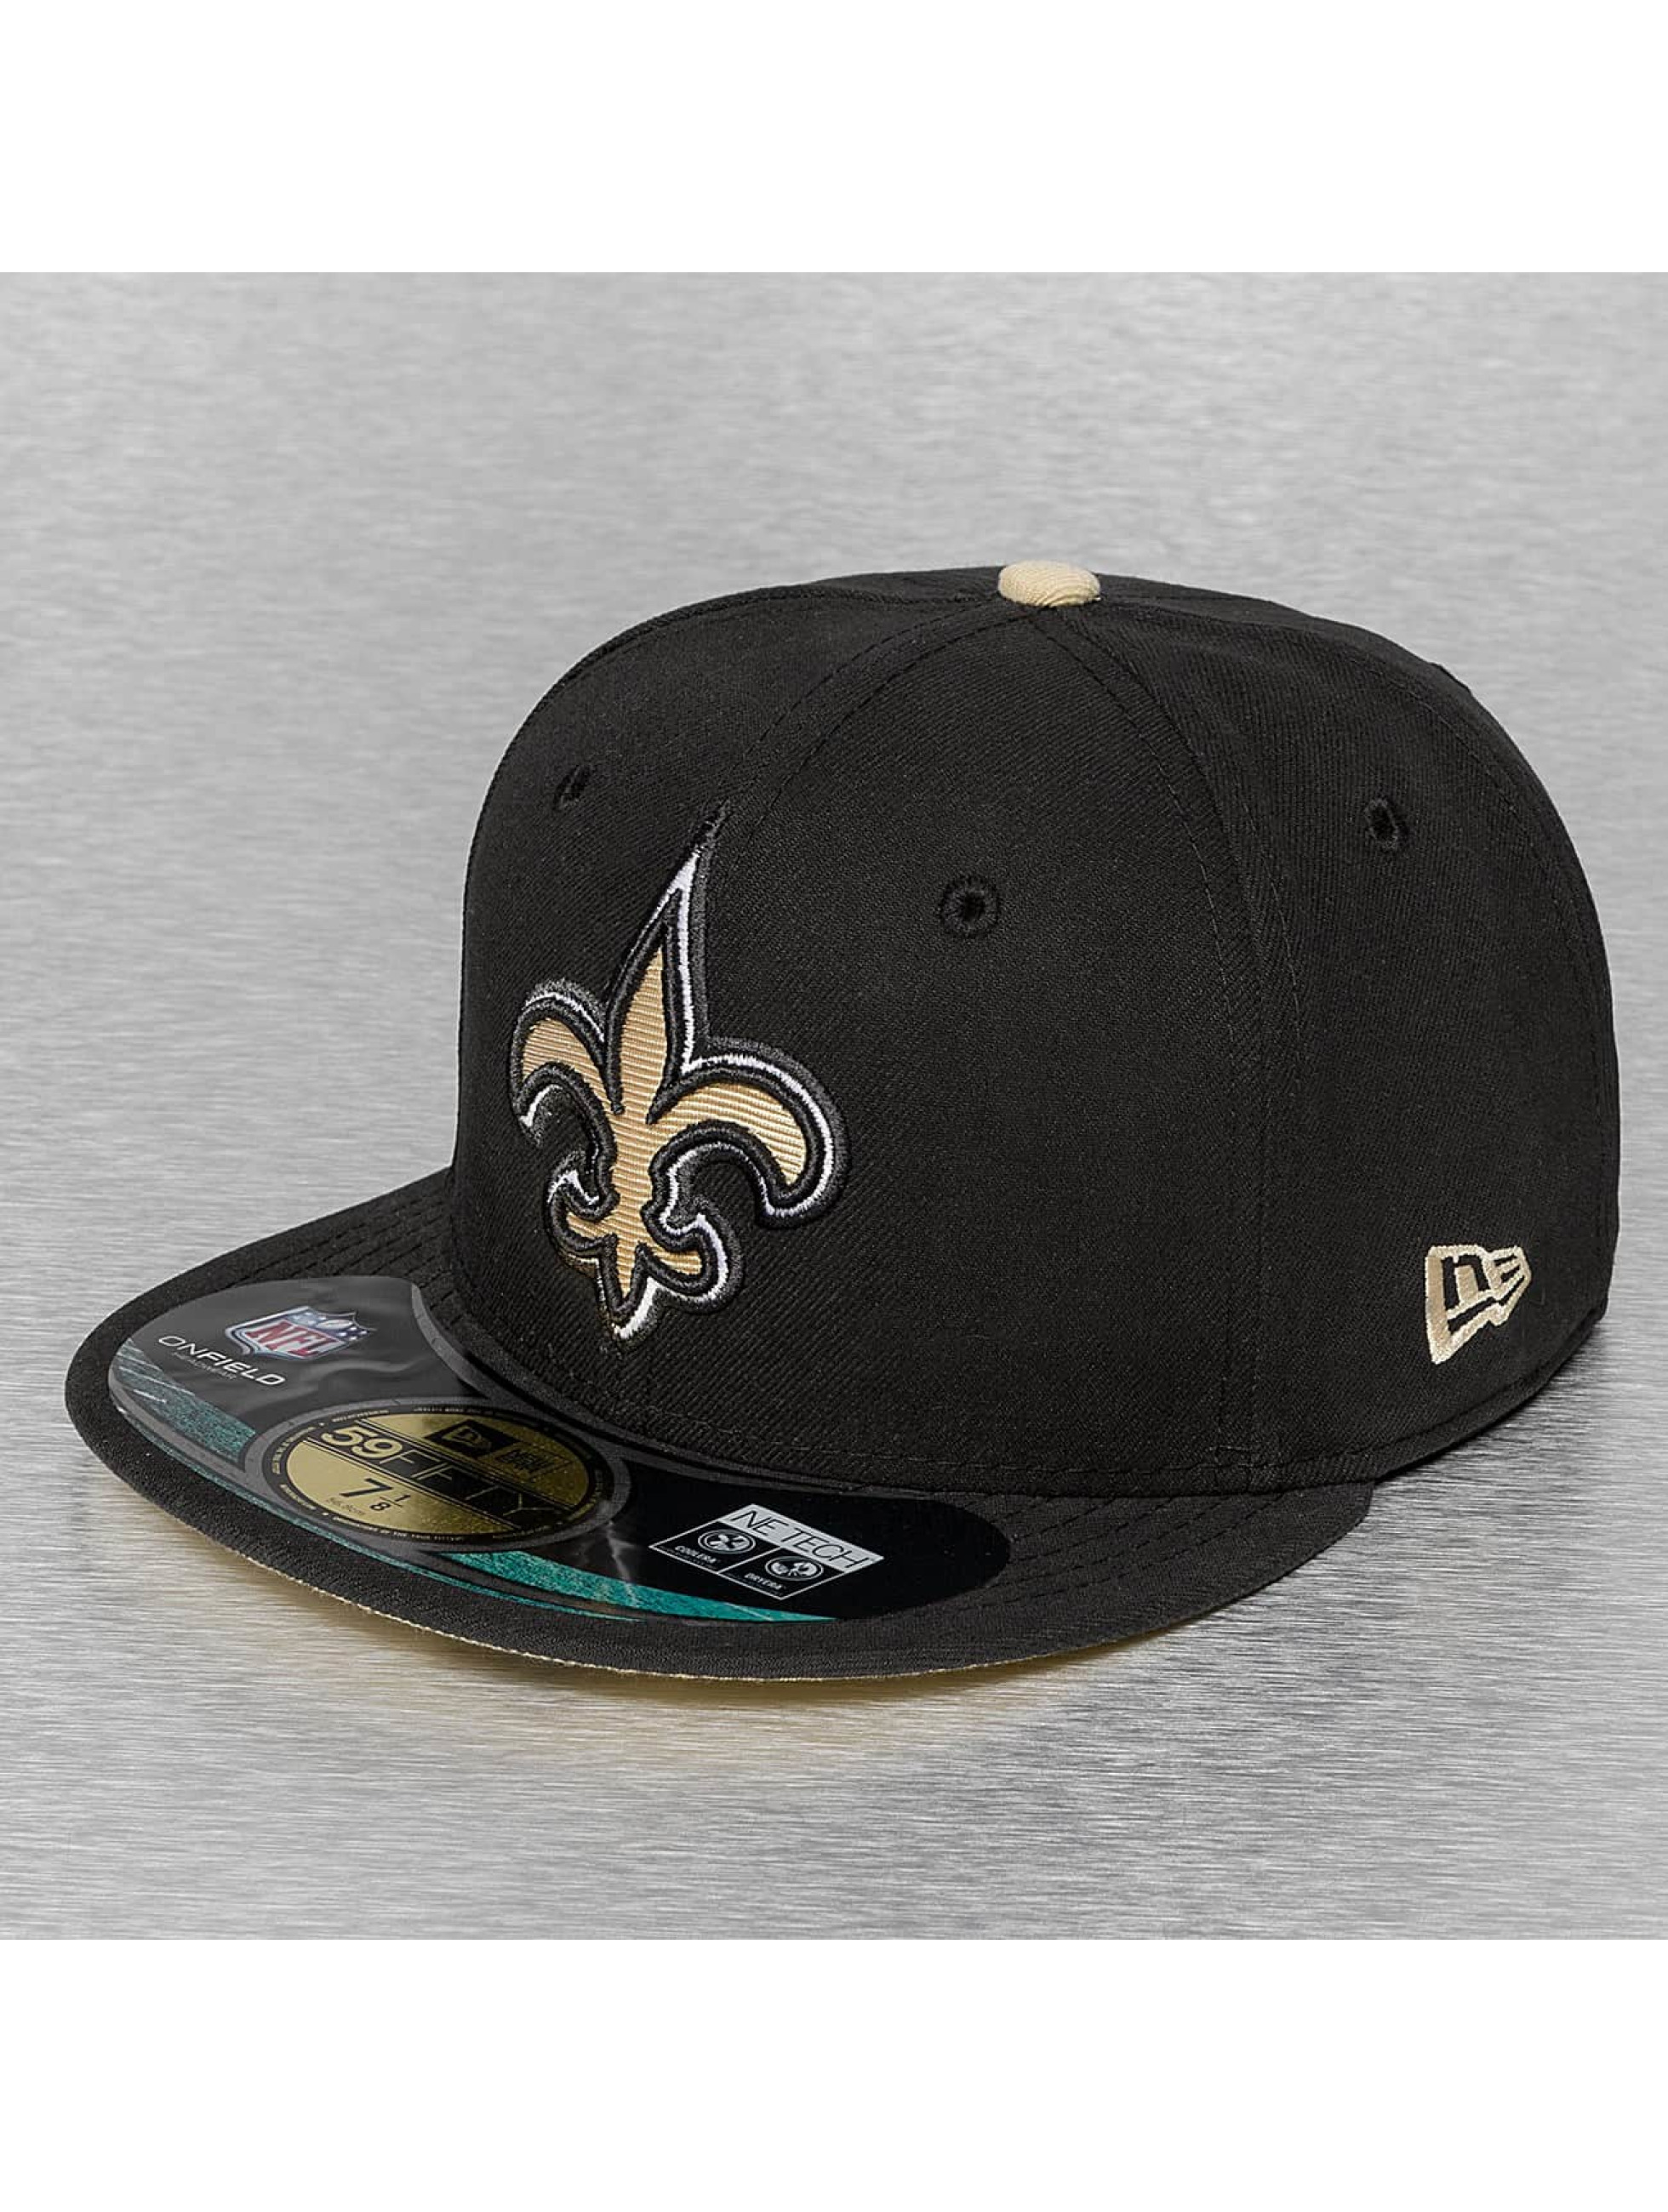 New Era Casquette Fitted NFL On Field New Orleans Saints 59Fifty noir